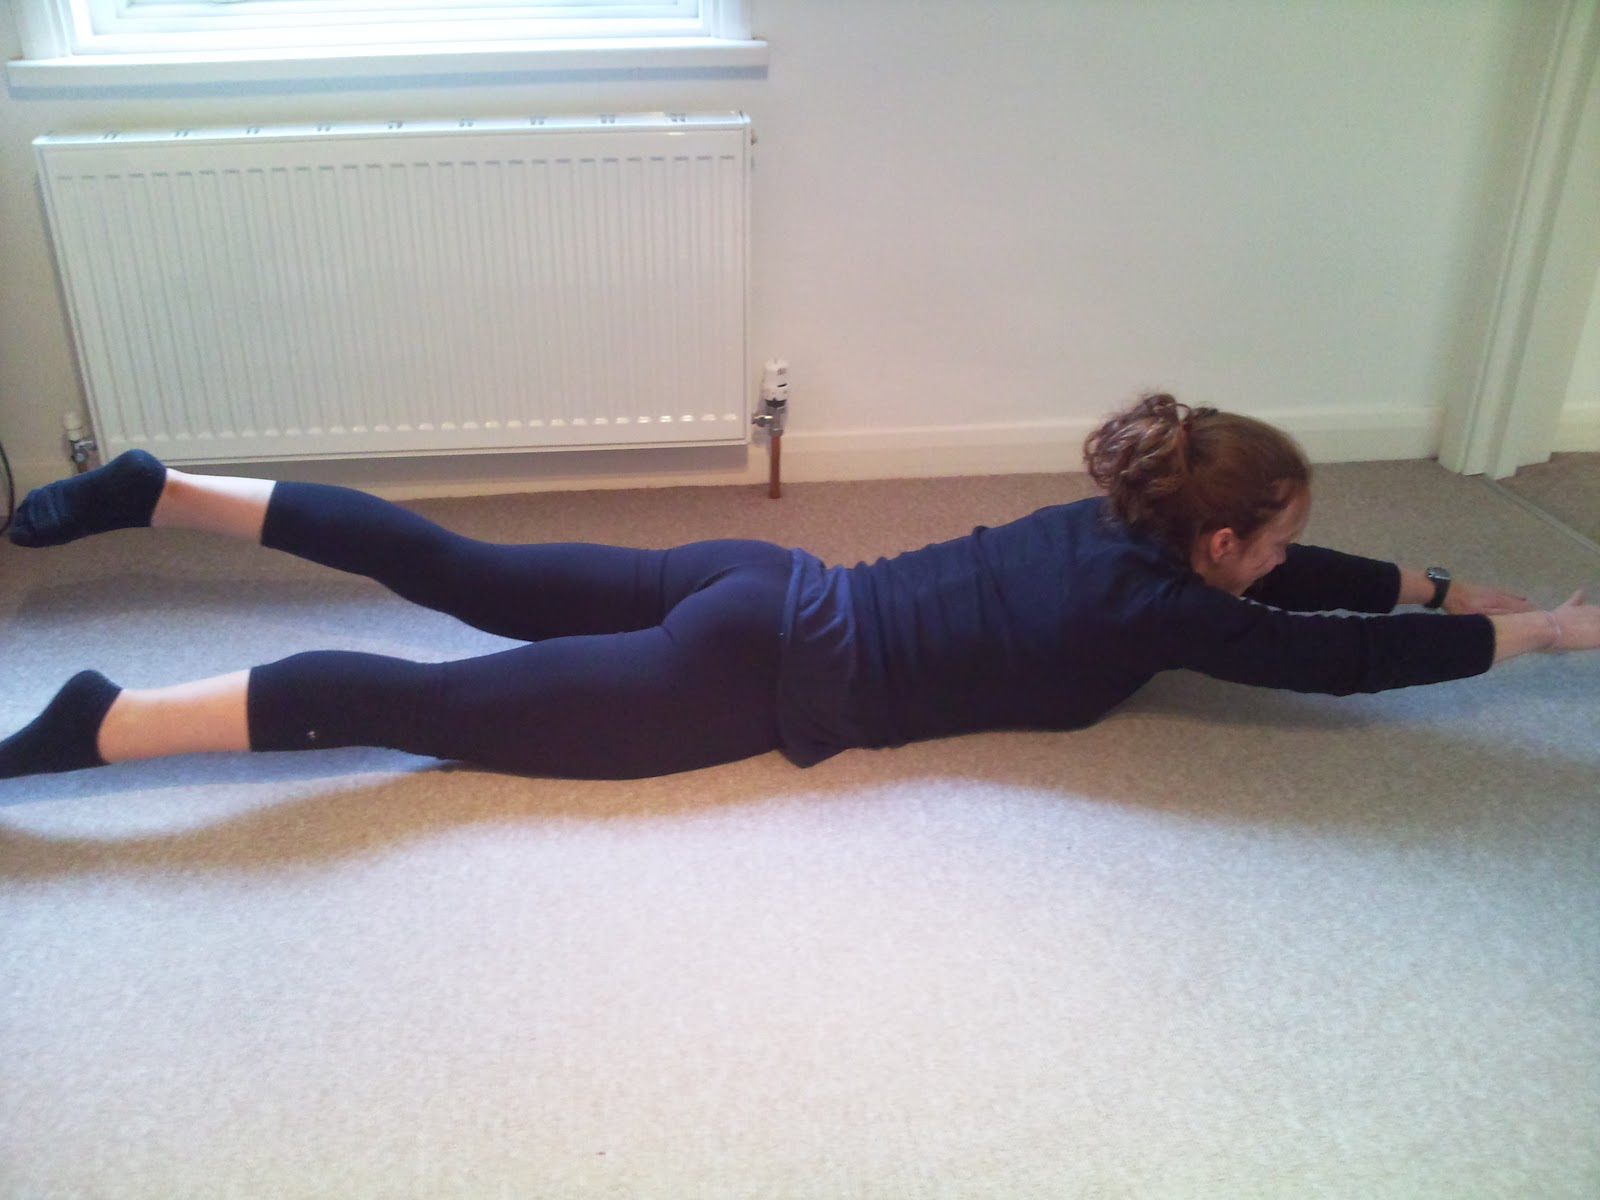 Lost In Fitness: Is Pilates Good For Your Back? Or Will It Make Your